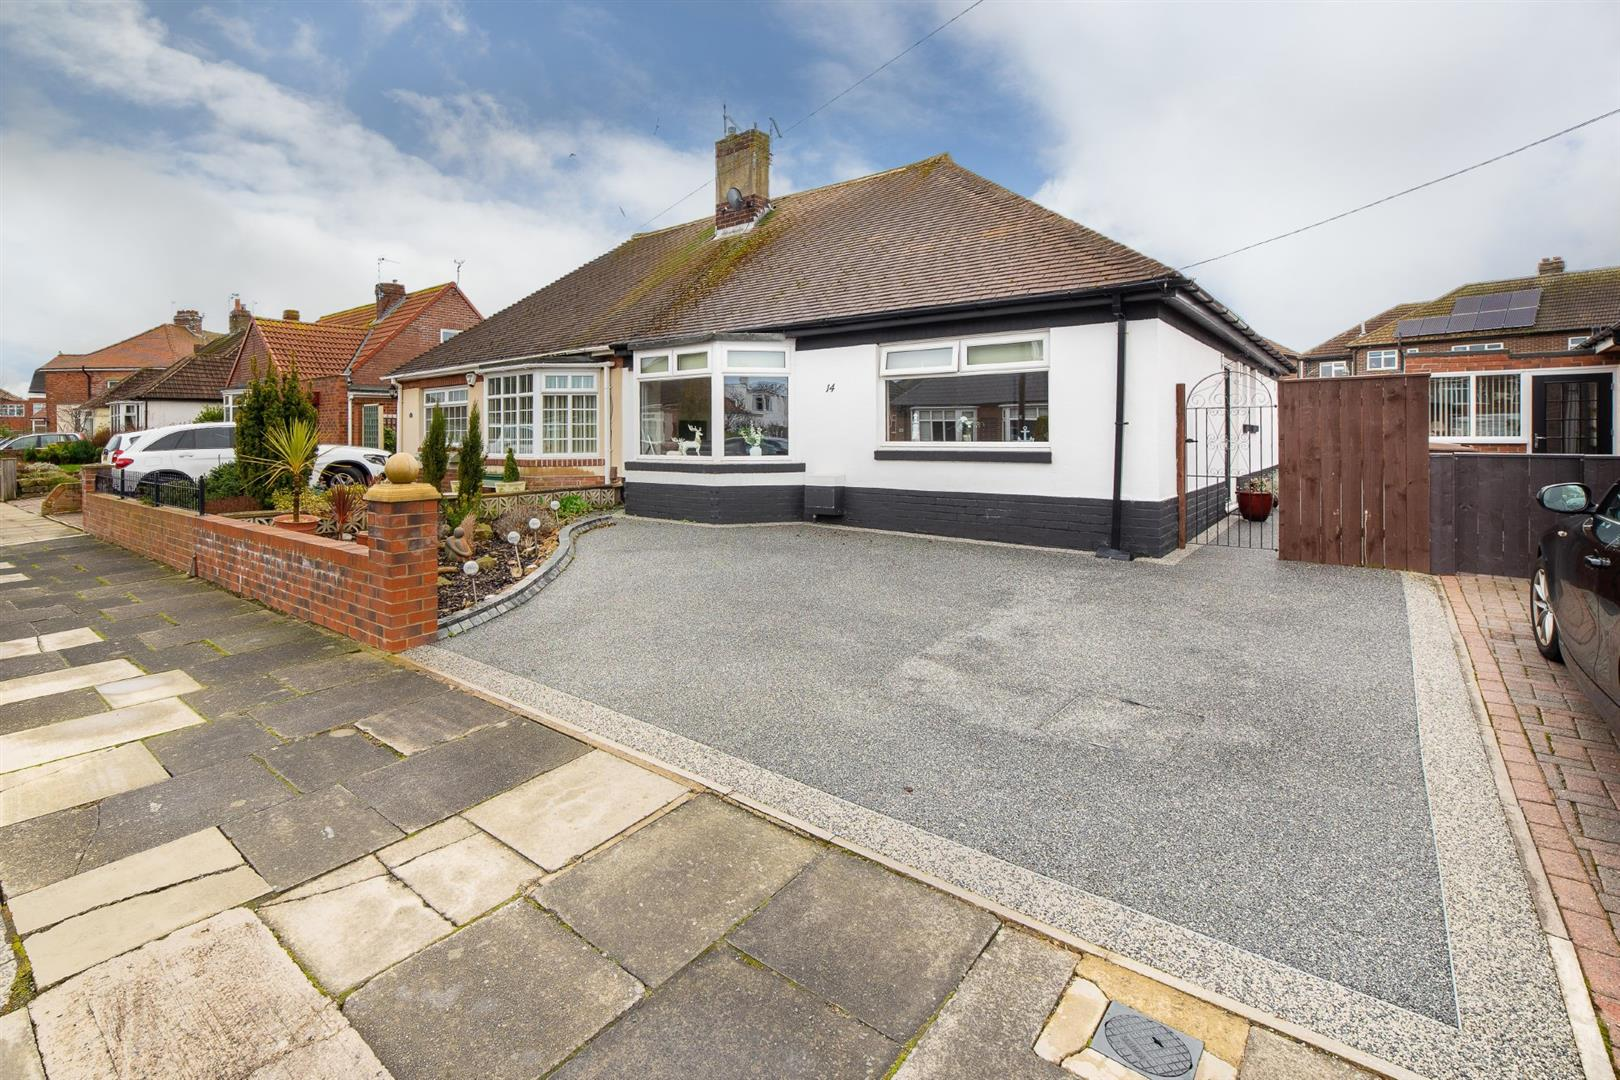 3 bed semi-detached bungalow for sale in Newcastle Upon Tyne, NE26 4NN - Property Image 1